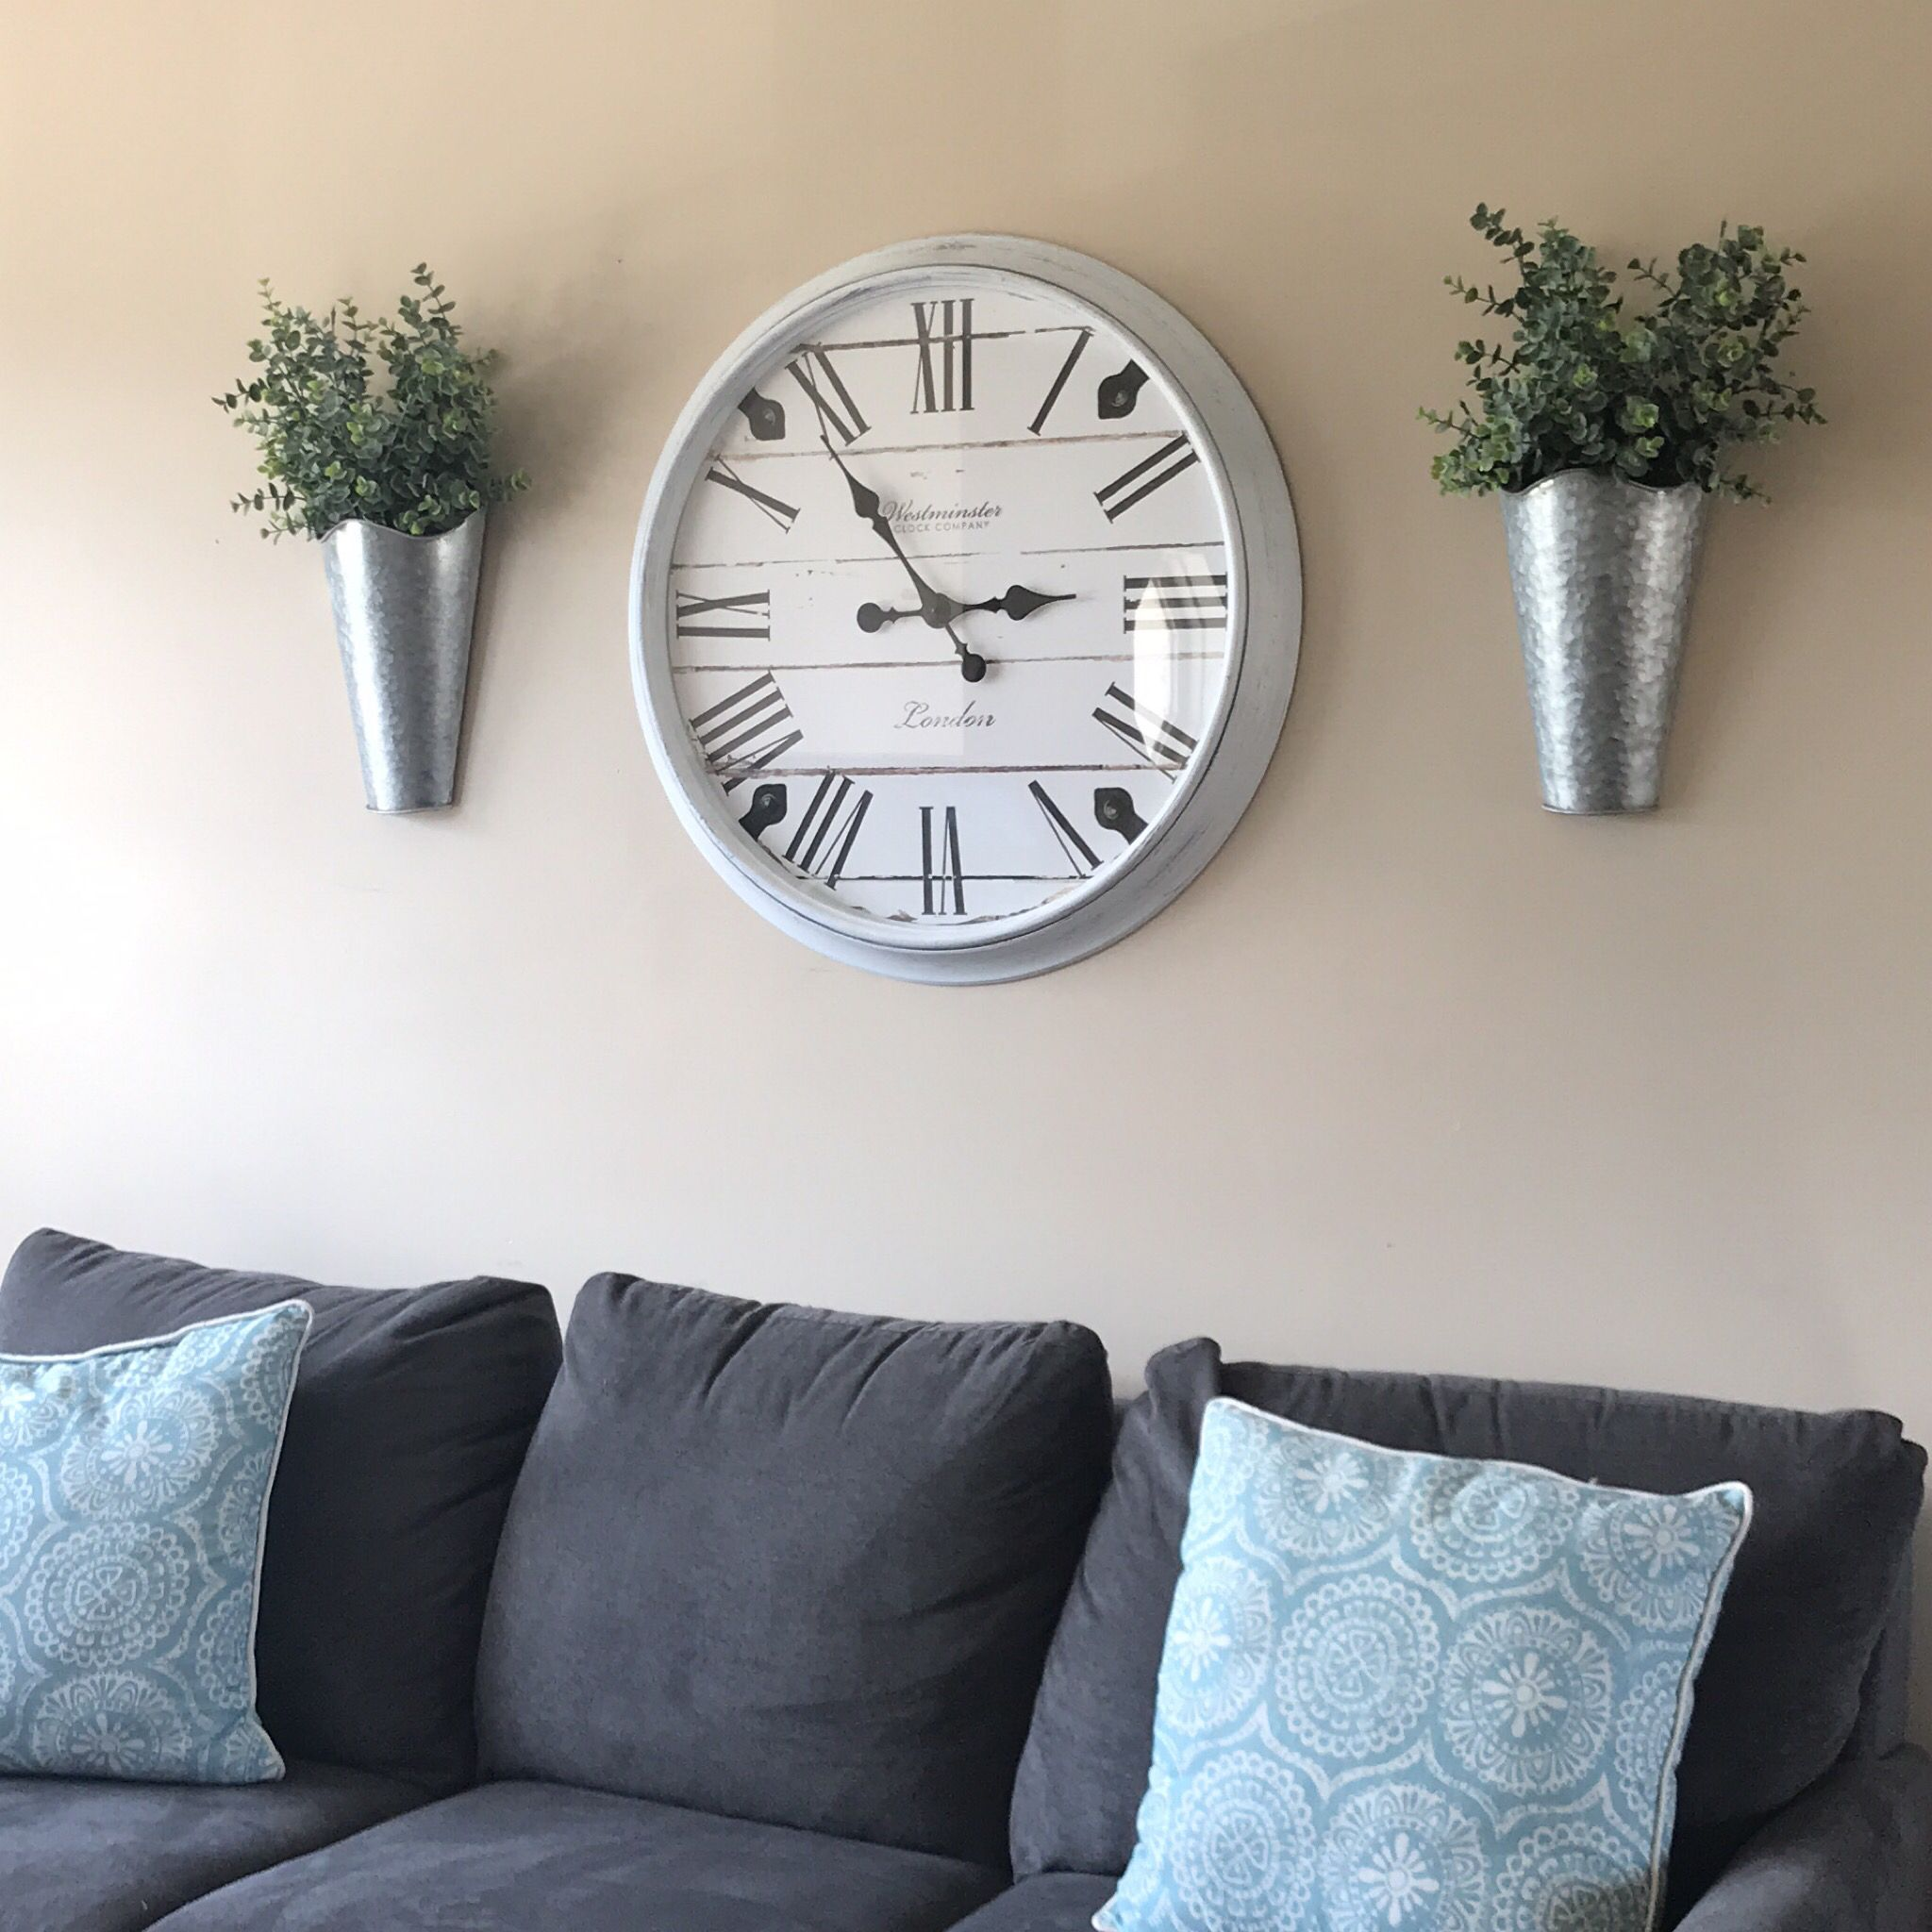 I got this clock from our lovely neighbors and wanted it